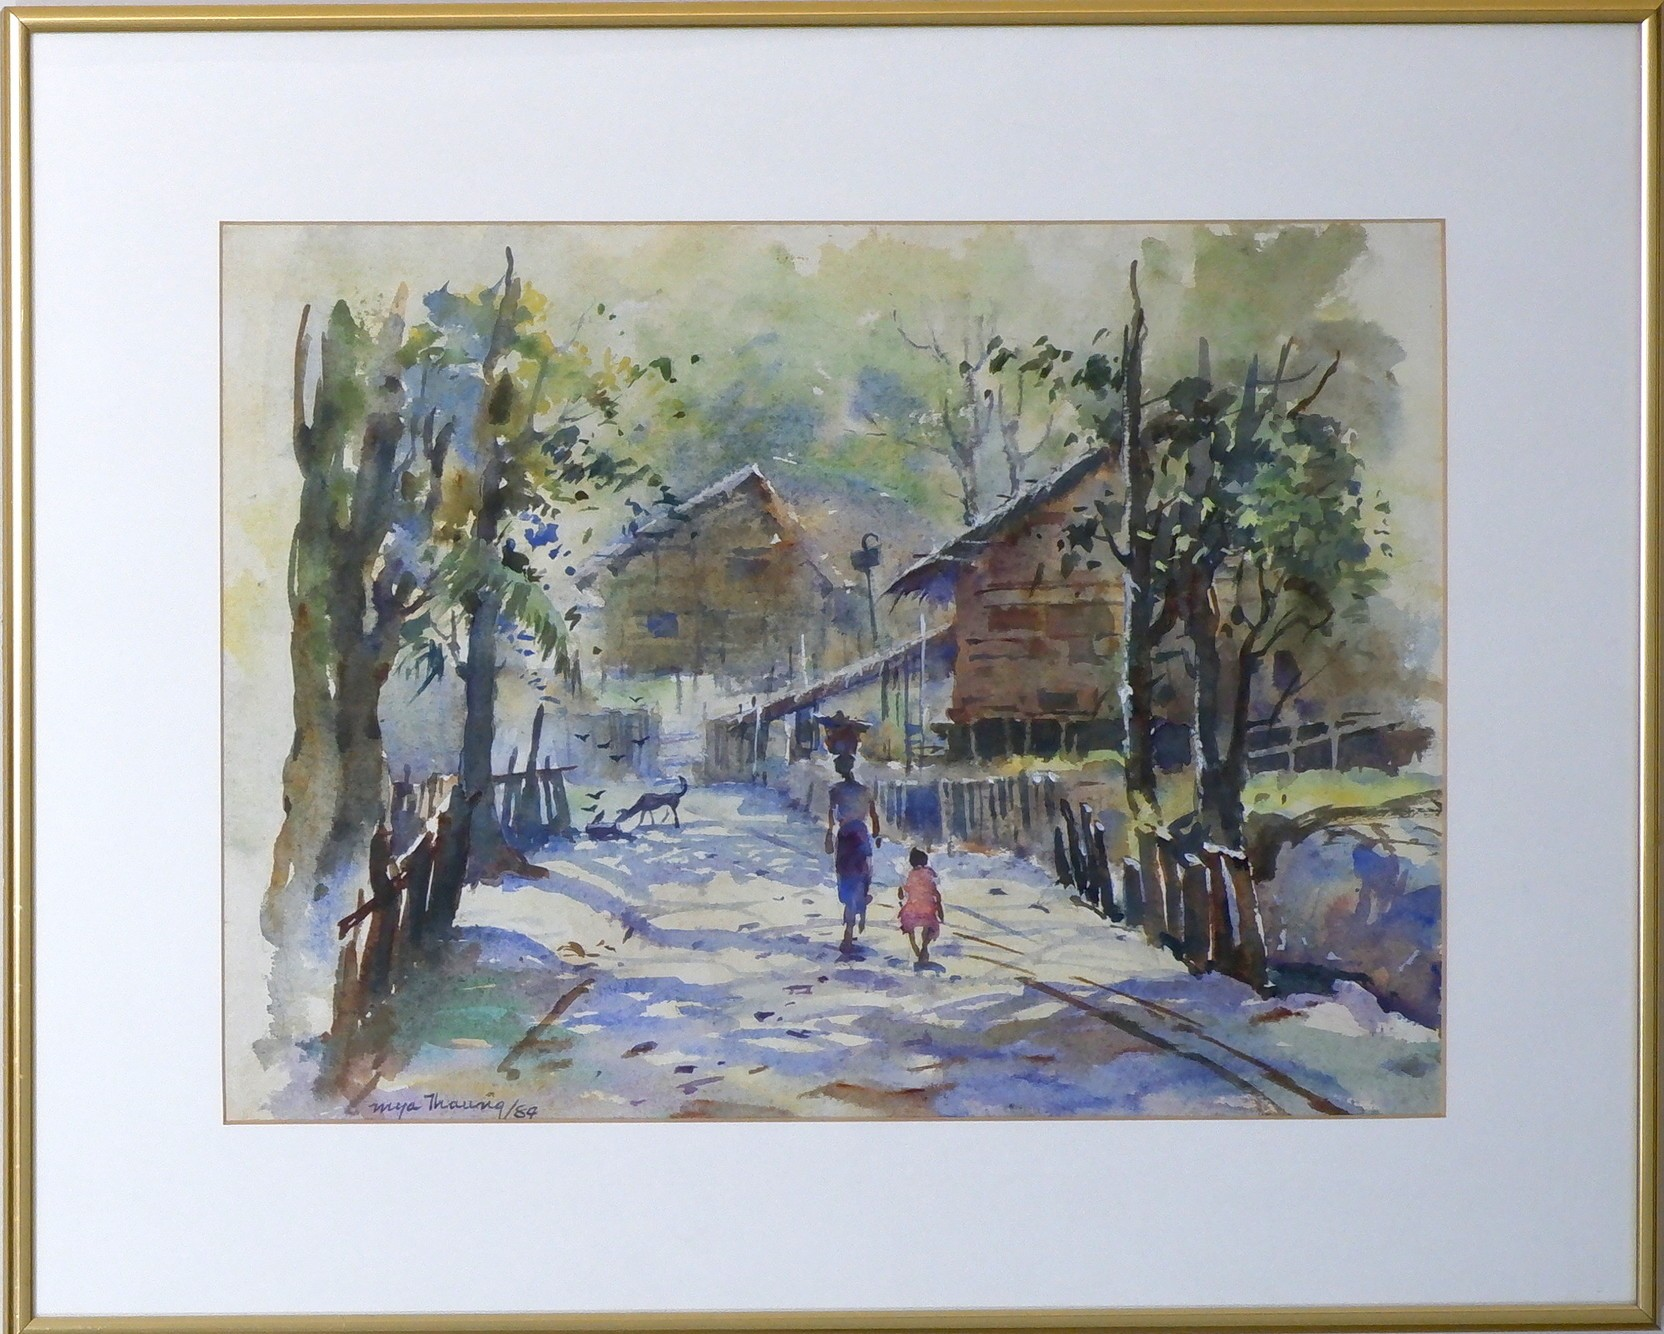 'Mya Thaung (1943-) Rangoon Street Scene Watercolour'